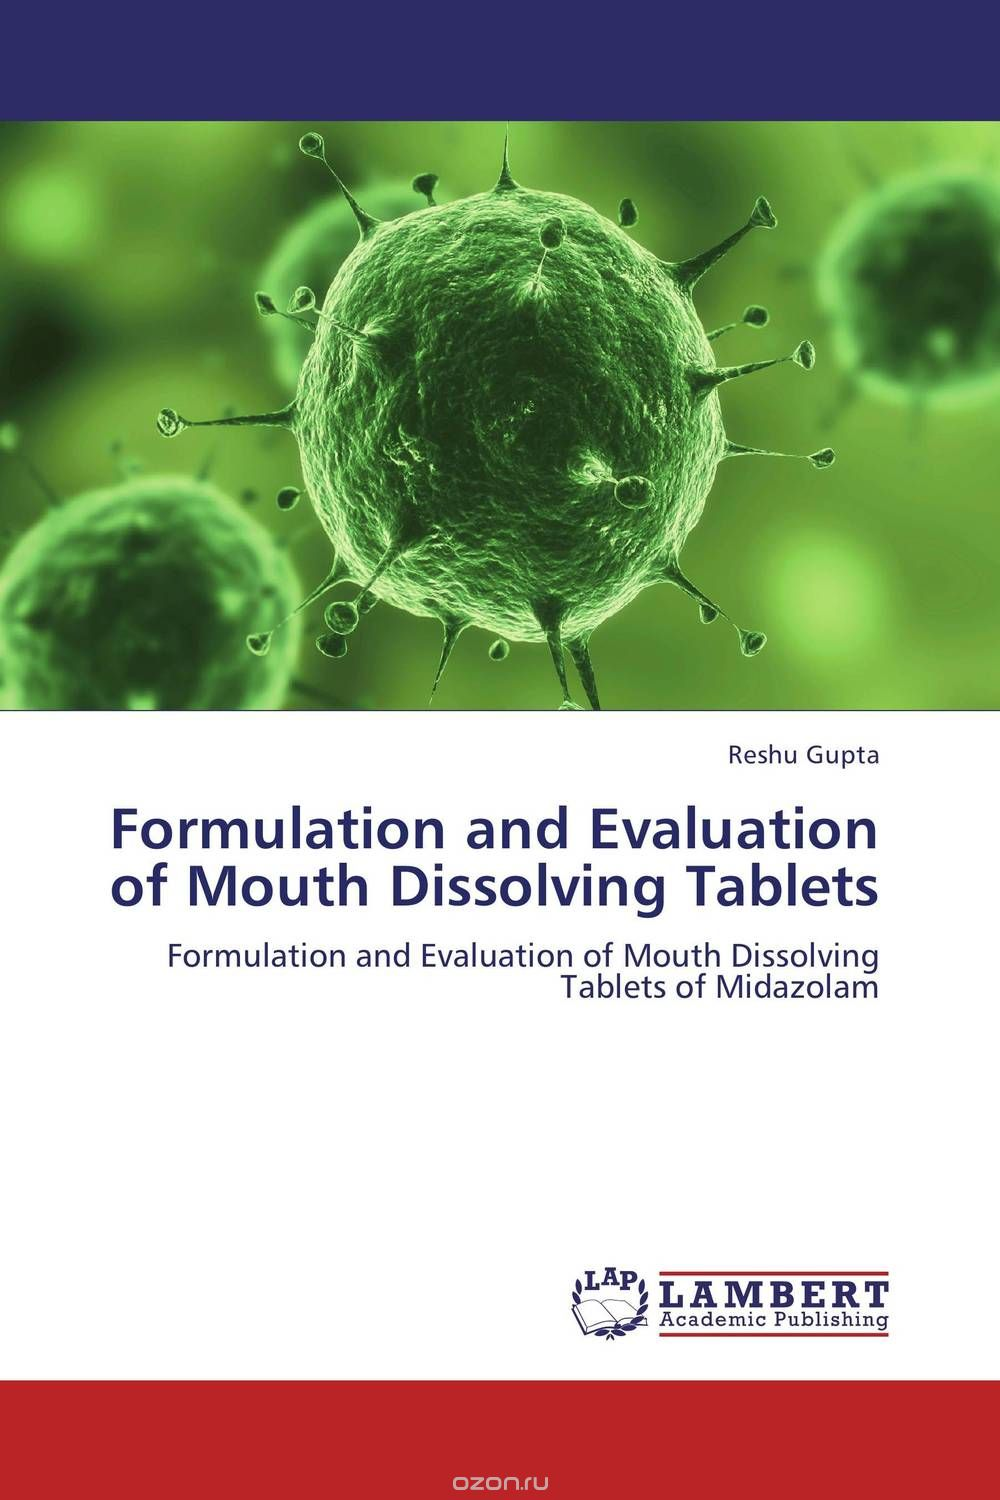 Formulation and Evaluation of Mouth Dissolving Tablets